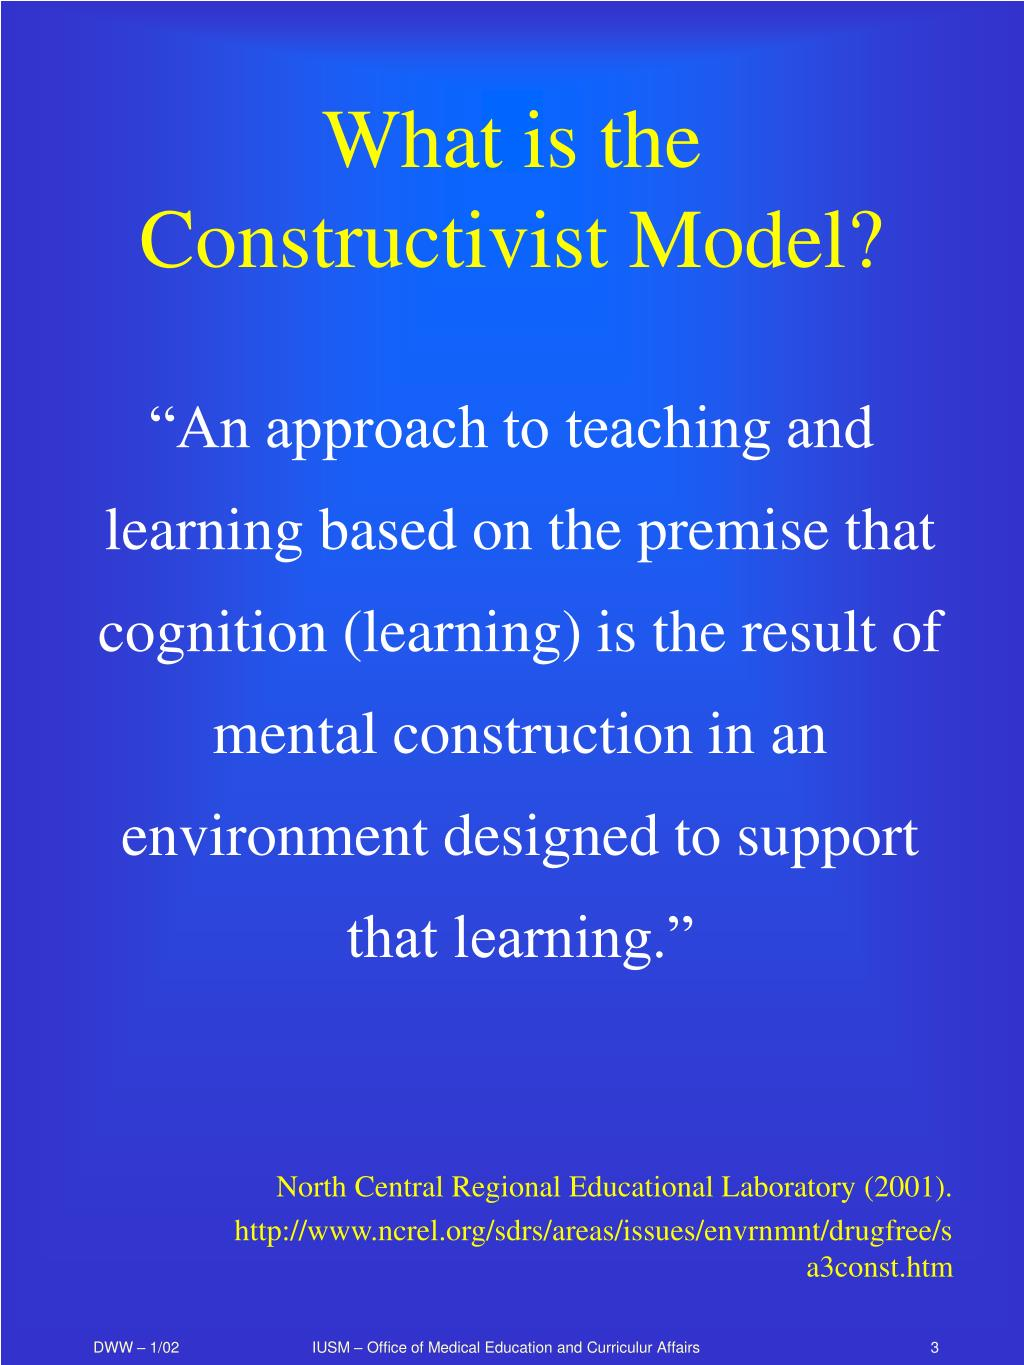 What is the Constructivist Model?